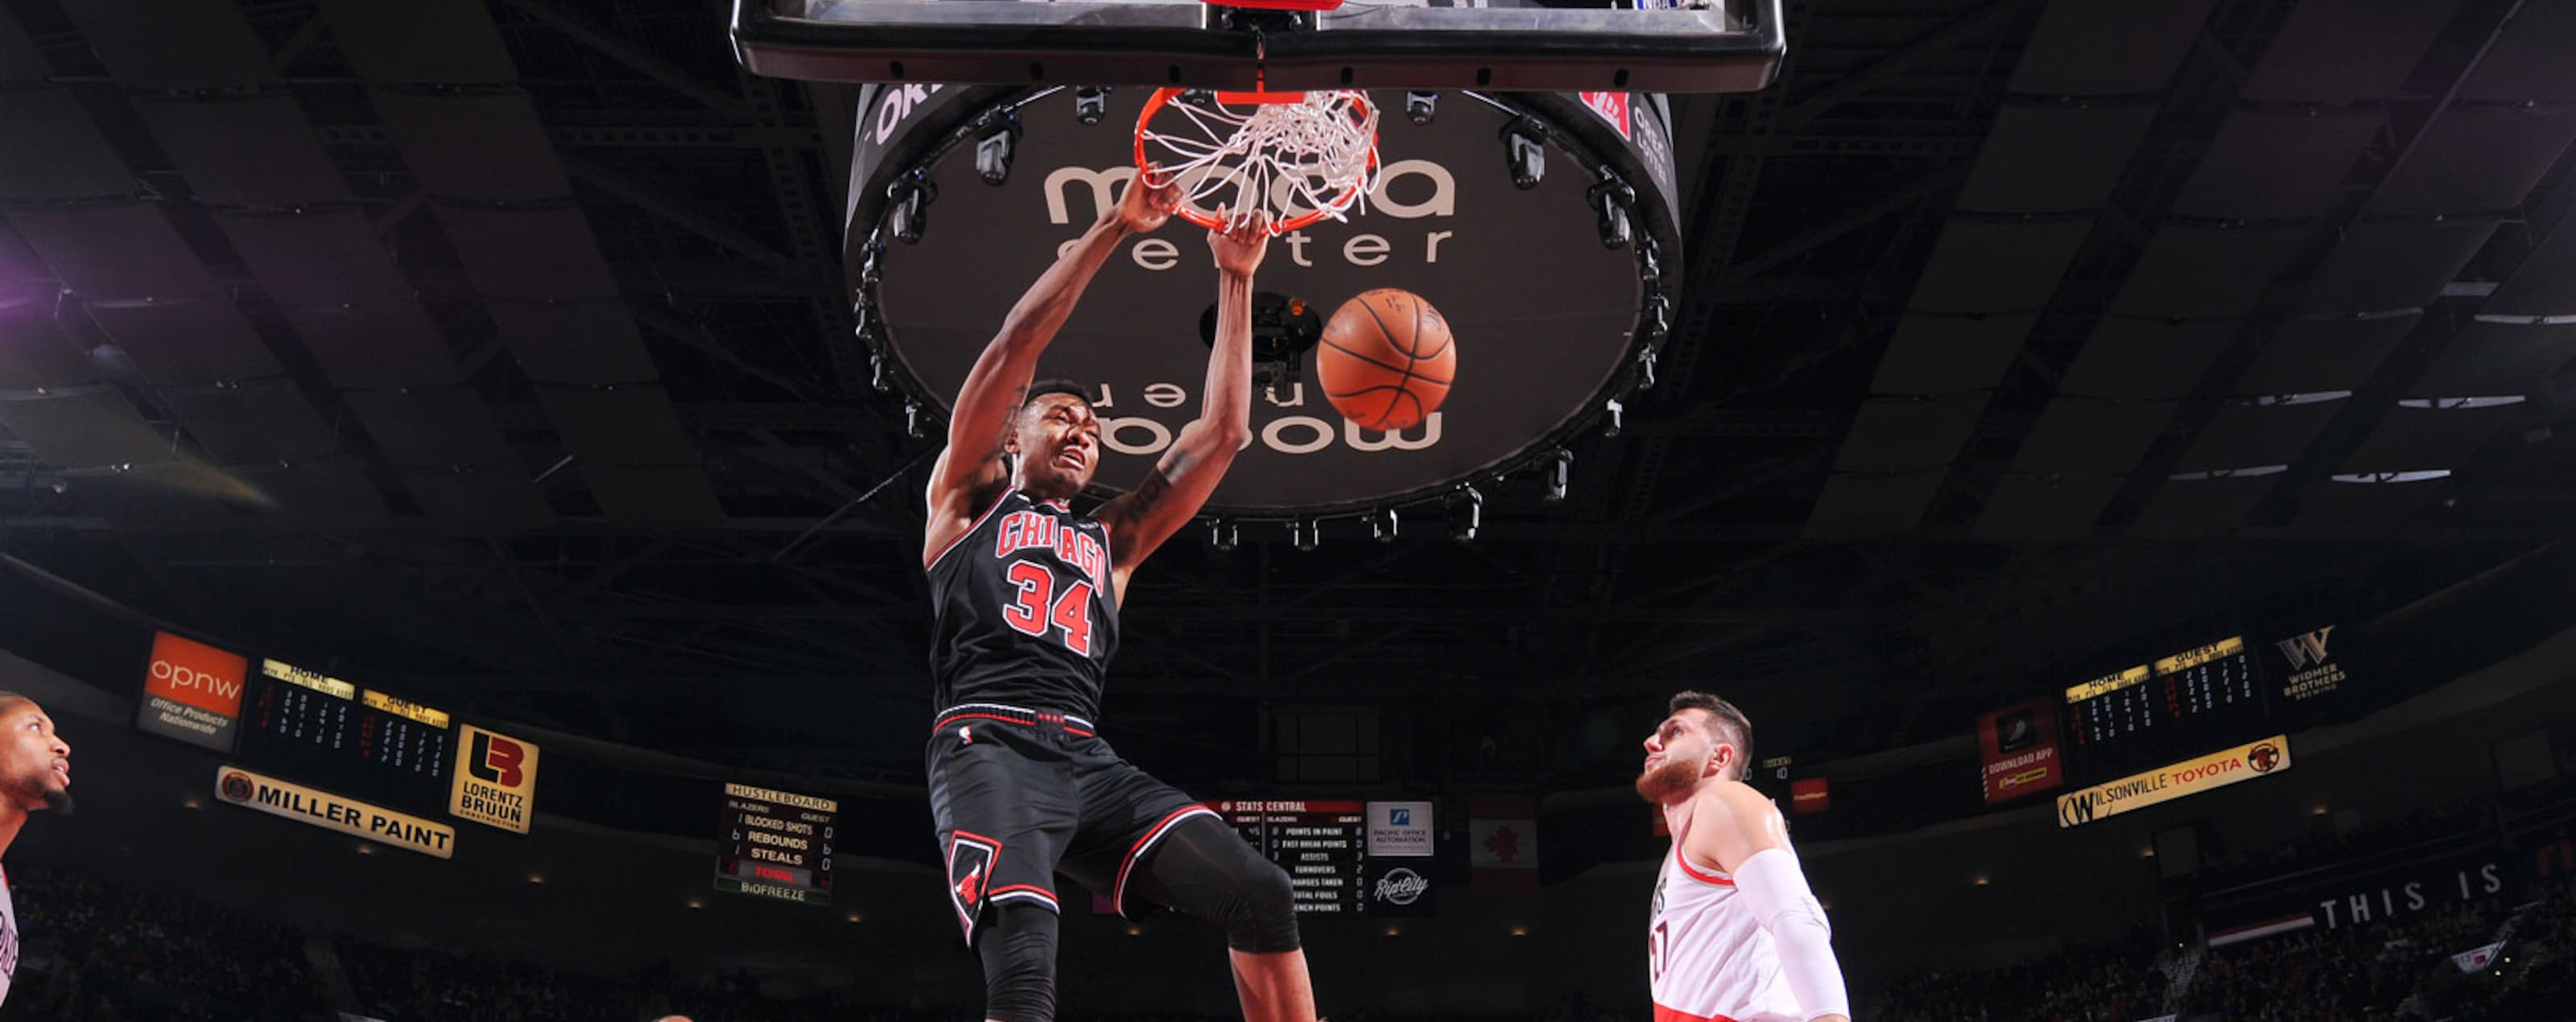 Wendell Carter Jr. #34 of the Chicago Bulls dunks the ball during the game against the Portland Trail Blazers on January 9, 2019 at the Moda Center Arena in Portland, Oregon.